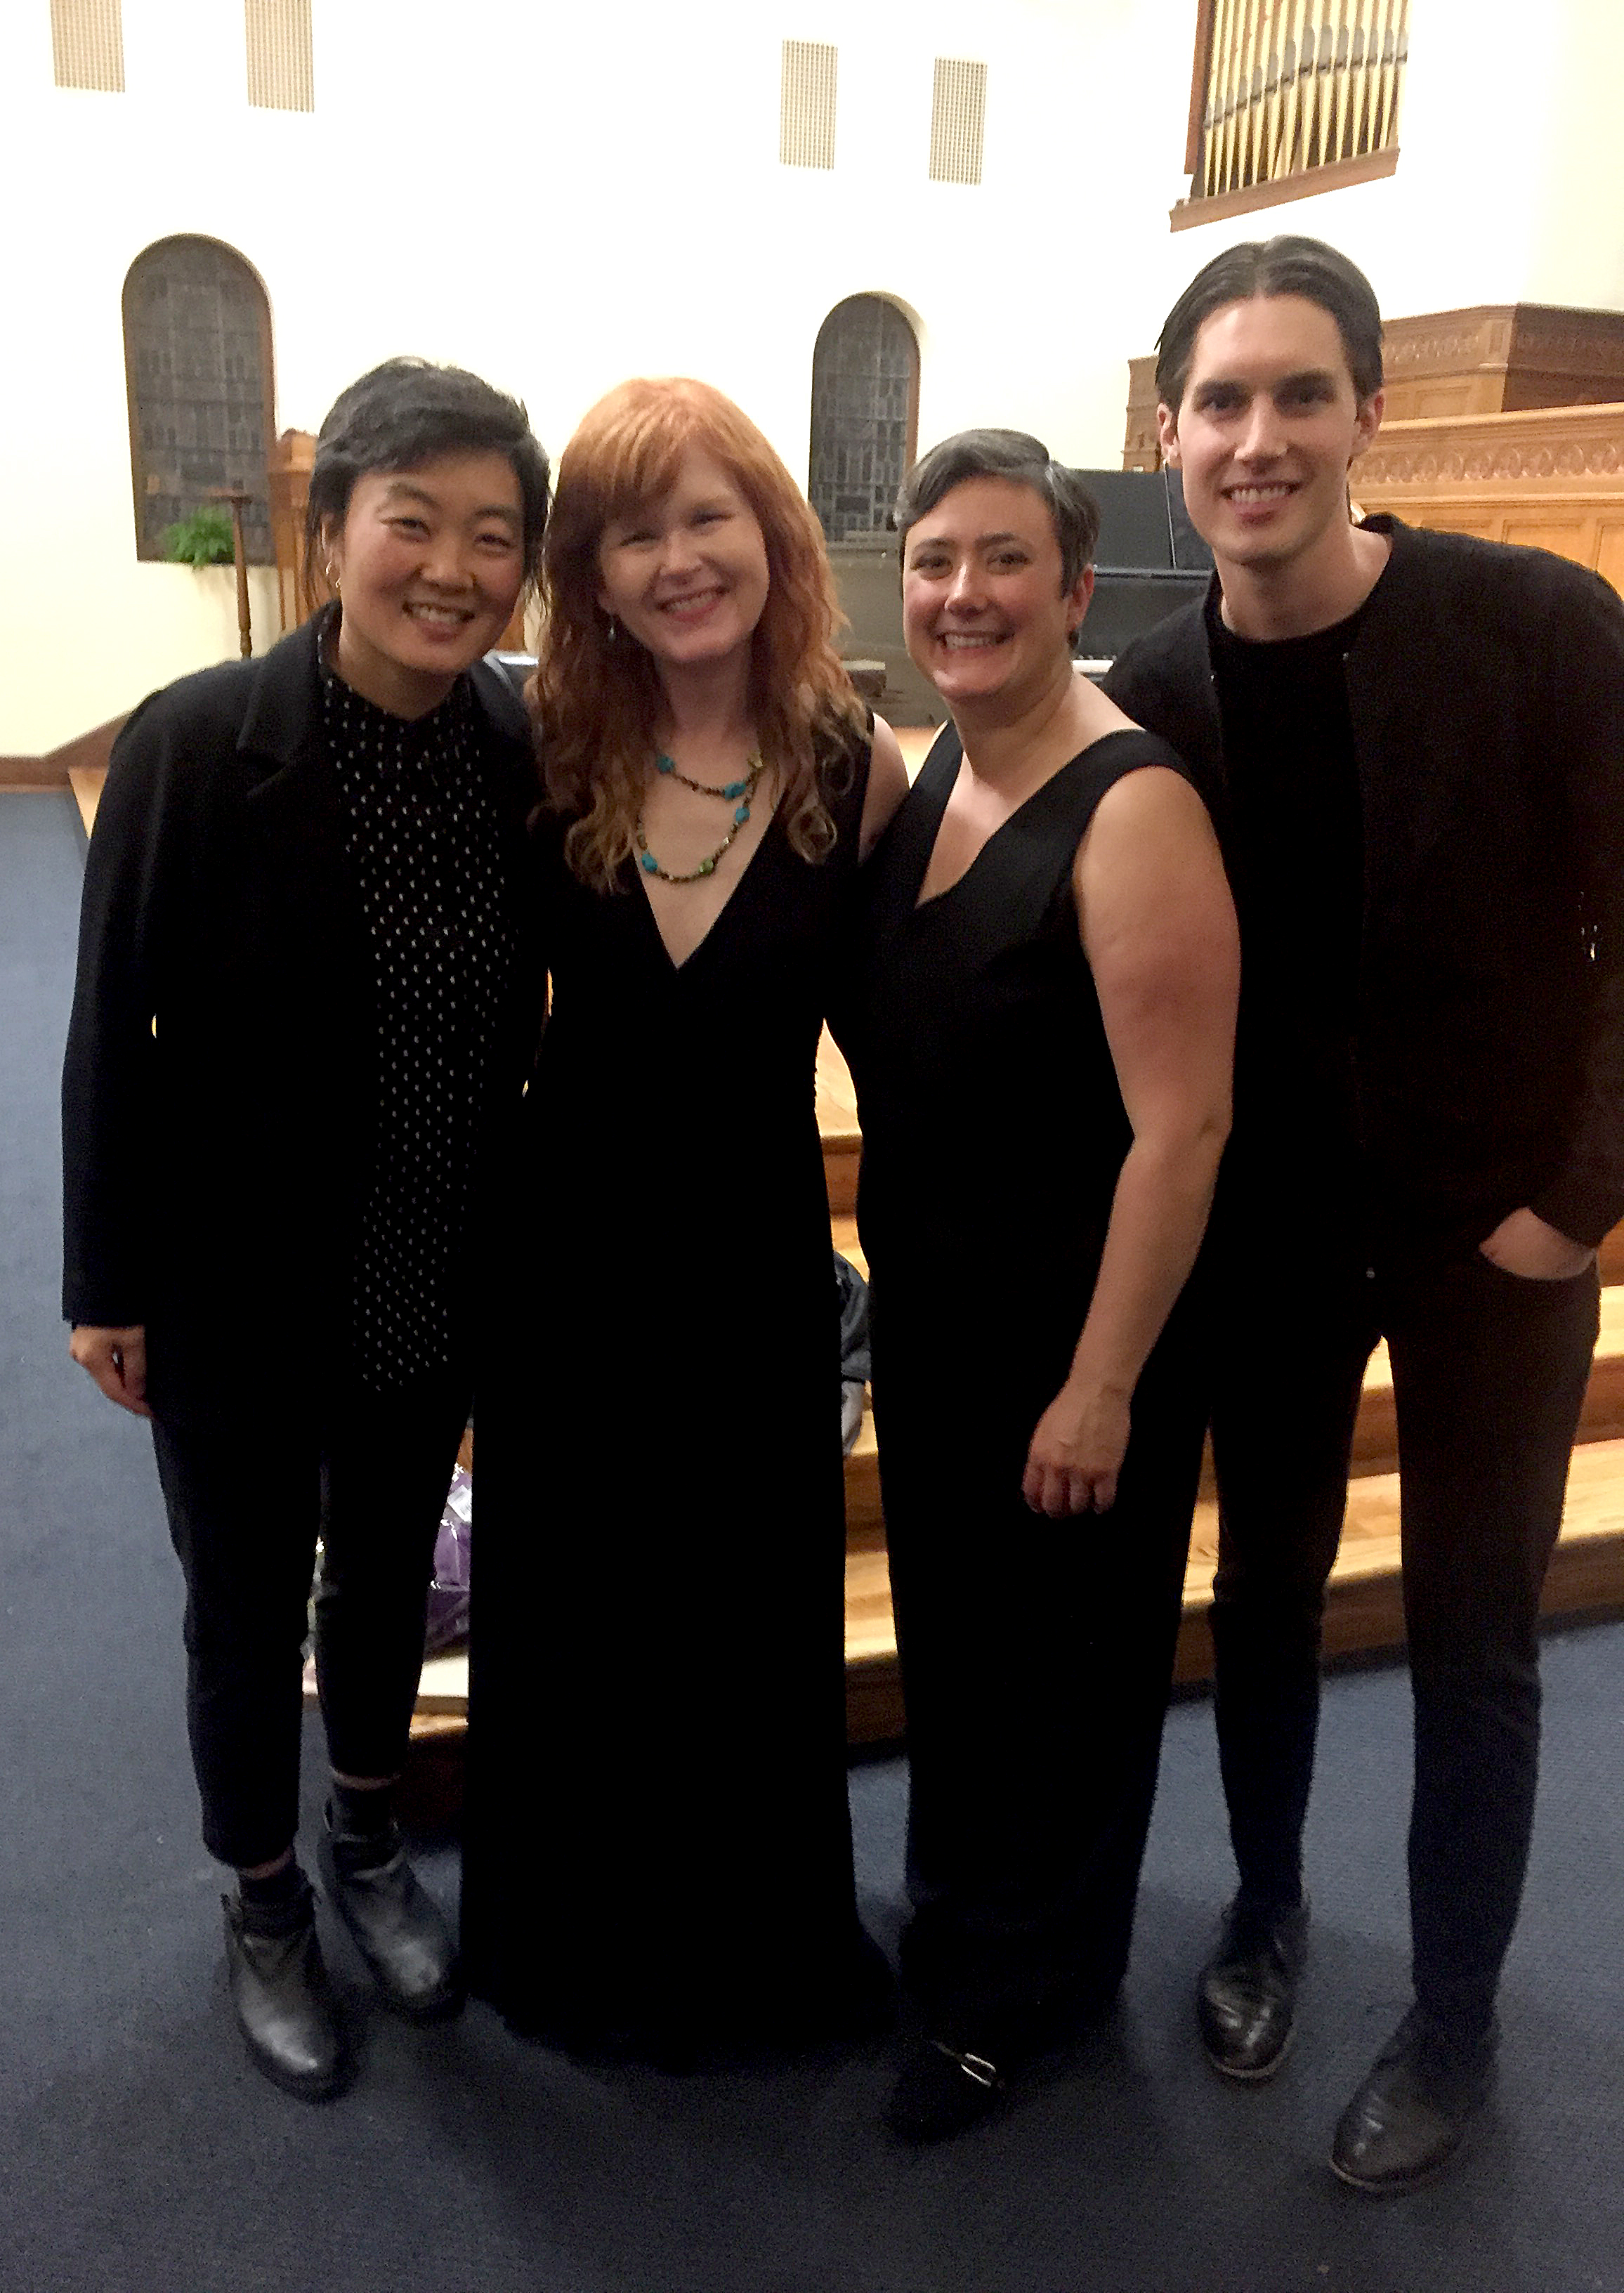 Post concert photo op after a beautifully rich program performed by Sarah Cahill, Regina Myers, Riley Nicolson and Monica Chew. Thanks to Old First Church Concerts and especially to Sarah for a bringing this piece to life! Here's a review of the concert at  San Francisco Classical Voice .